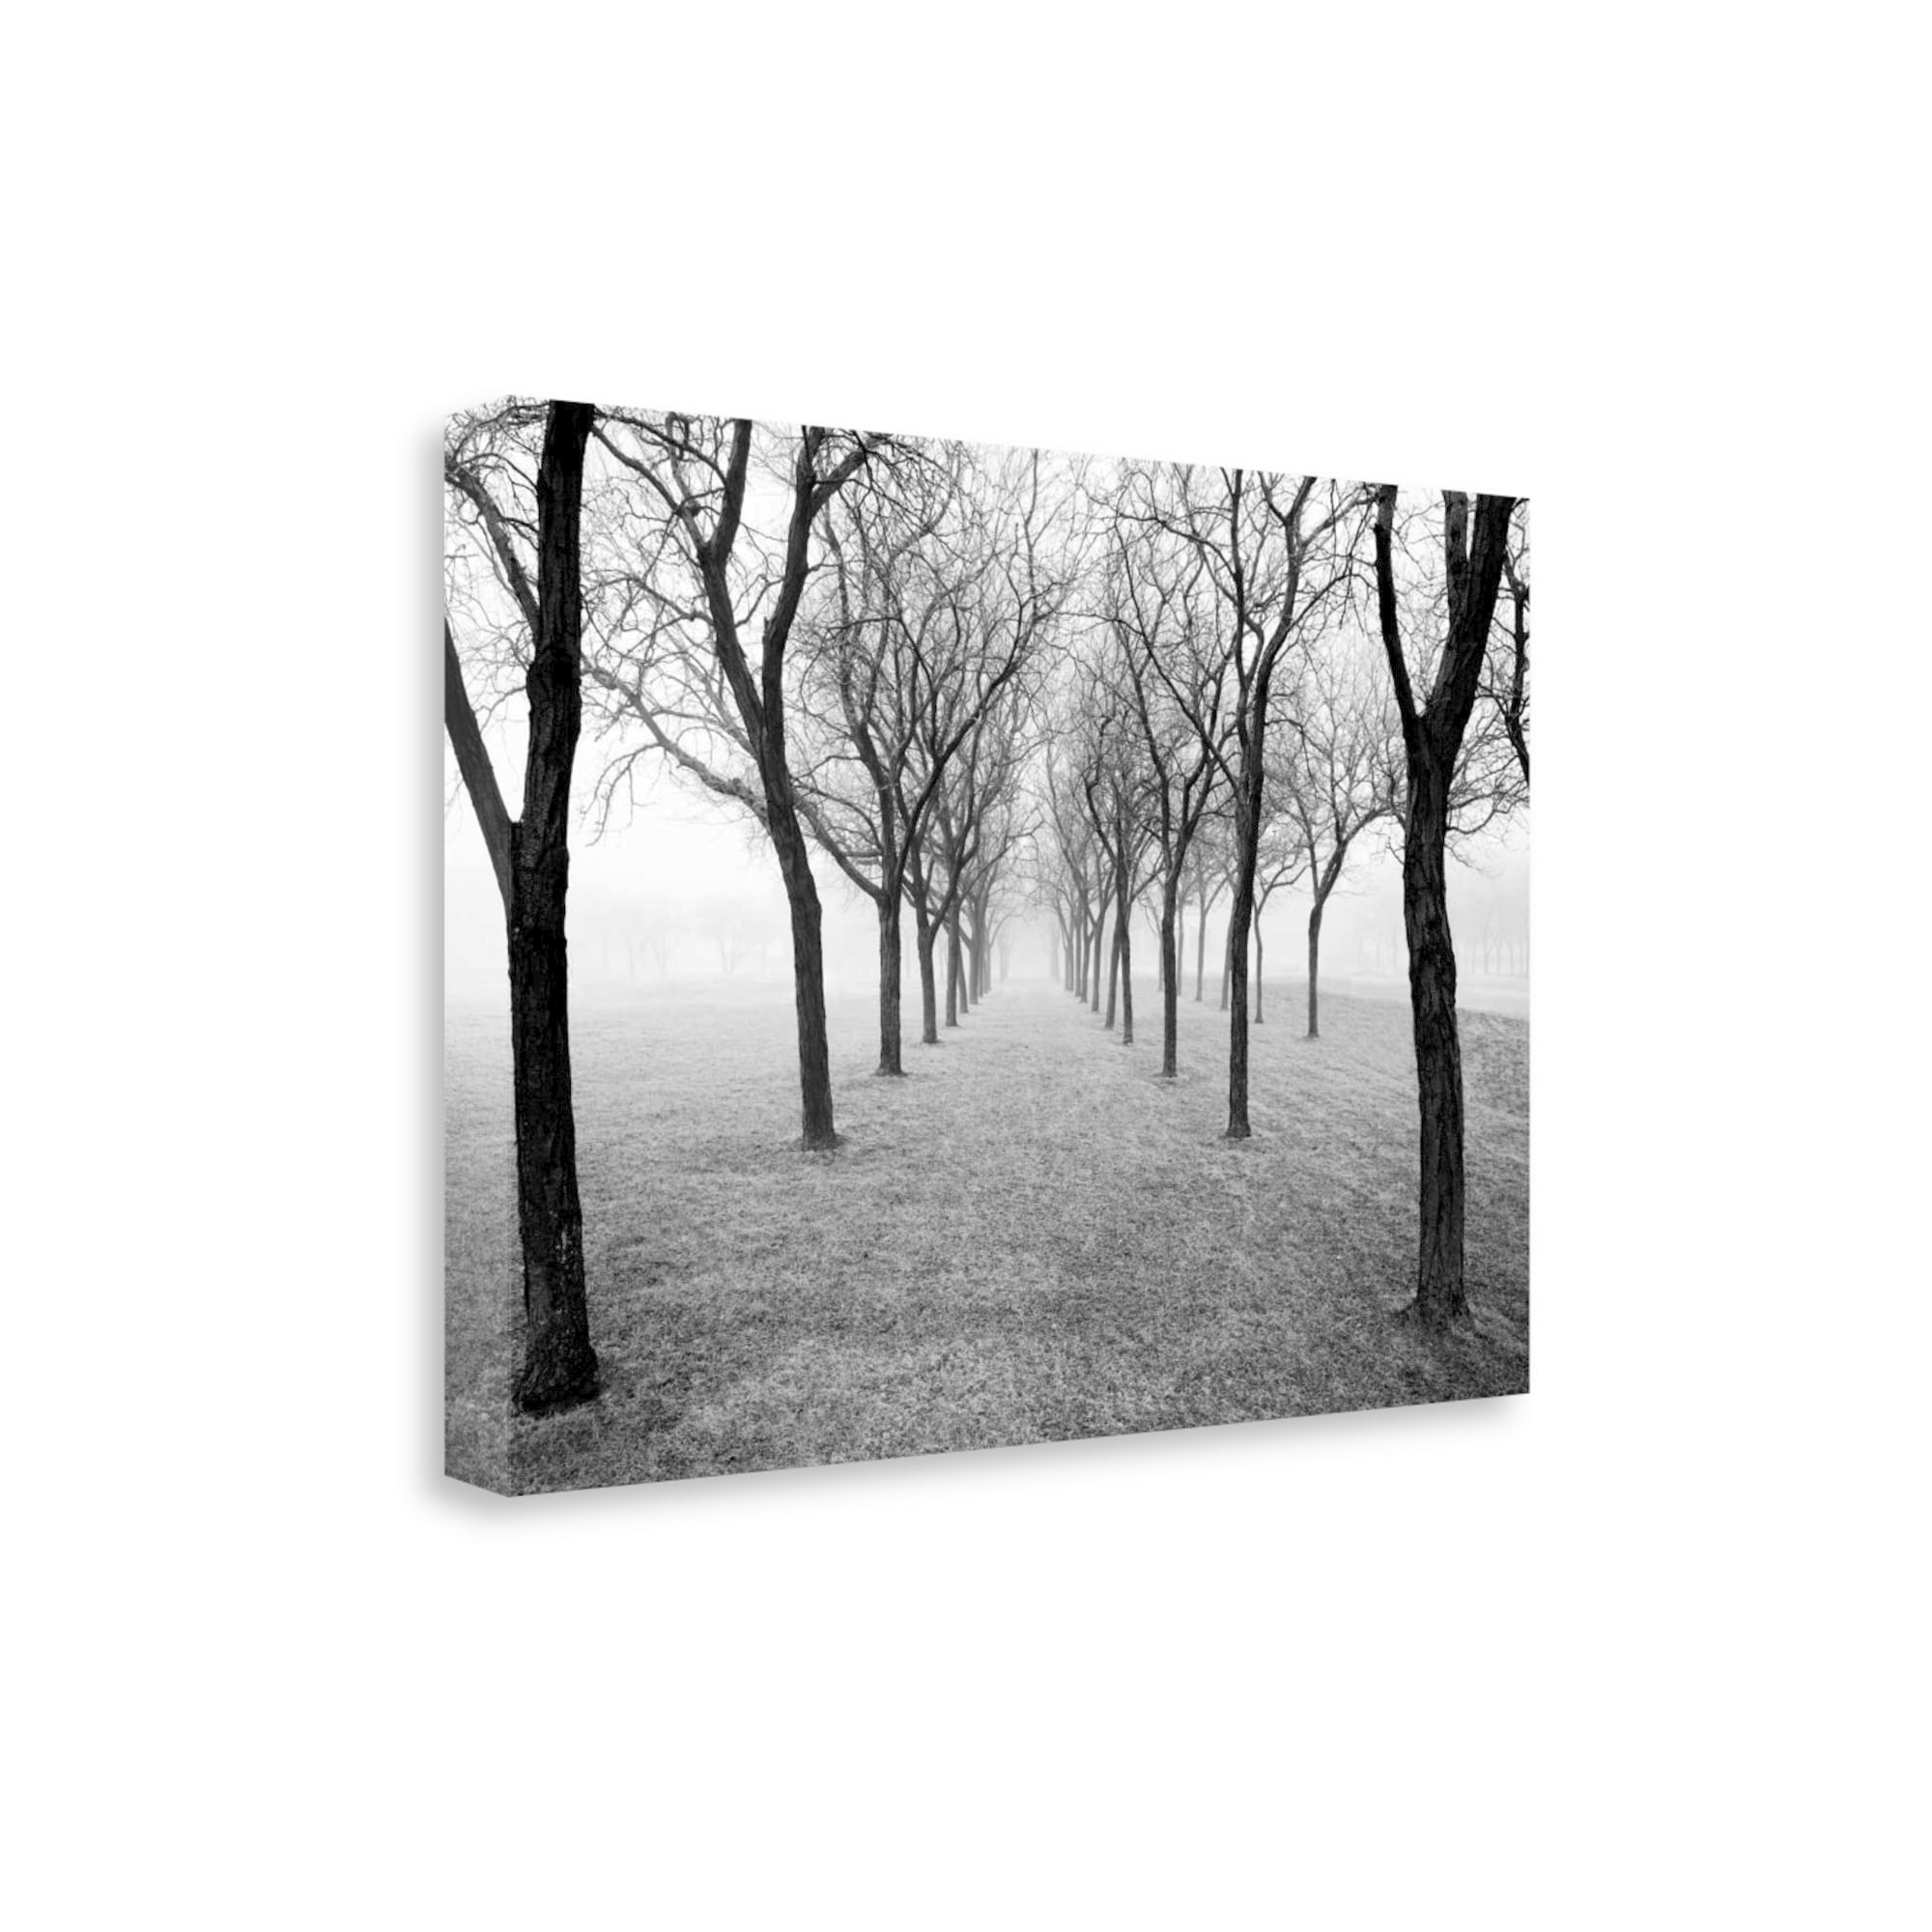 Details about tunnel of trees by monte nagler gallery wrap canvas